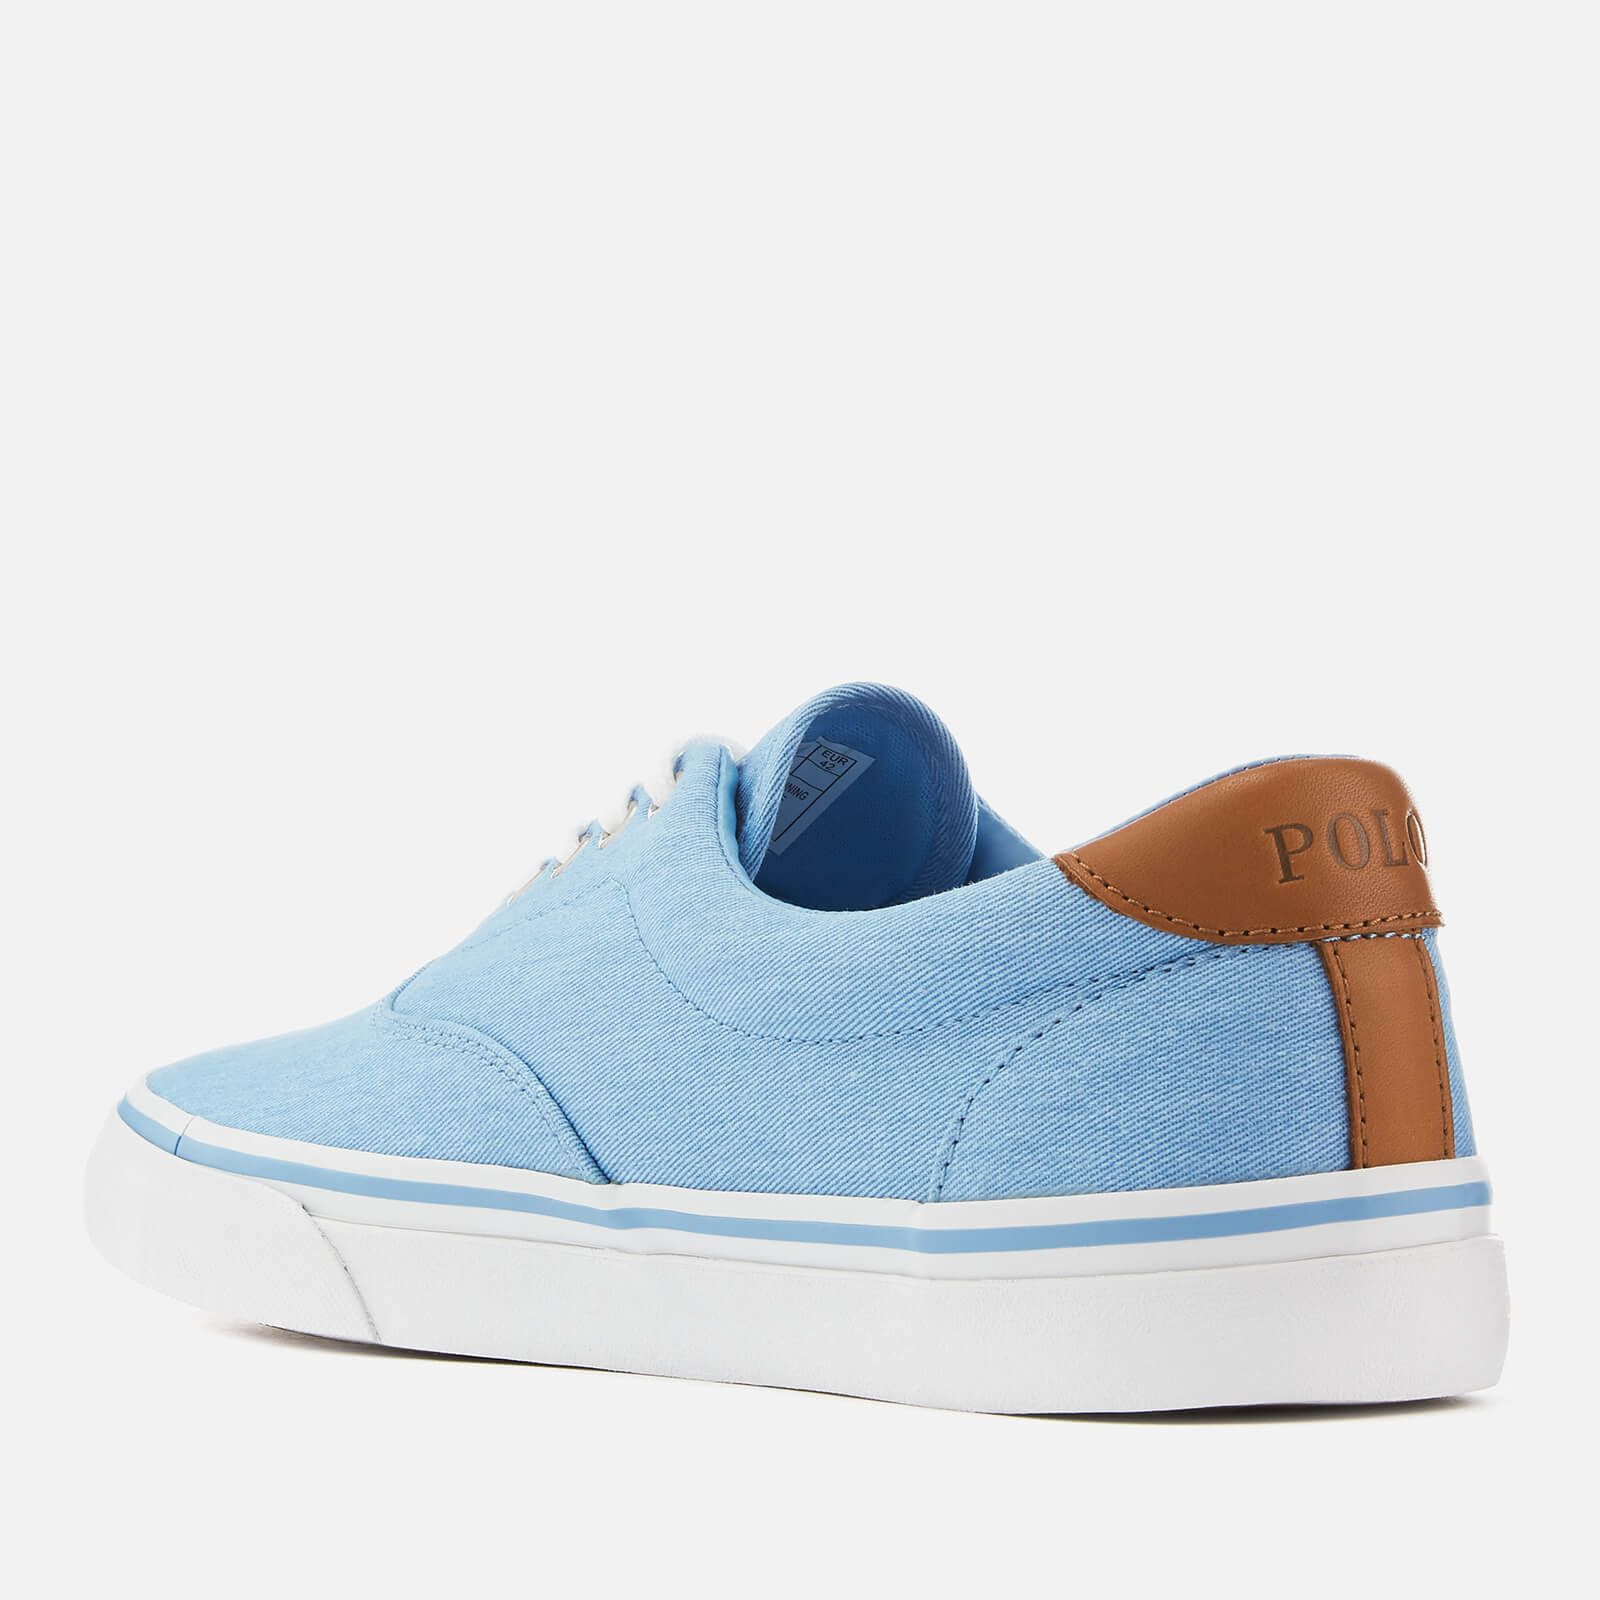 9e49b49f7a Polo Ralph Lauren Men's Thorton Washed Twill Vulcanised Trainers ...